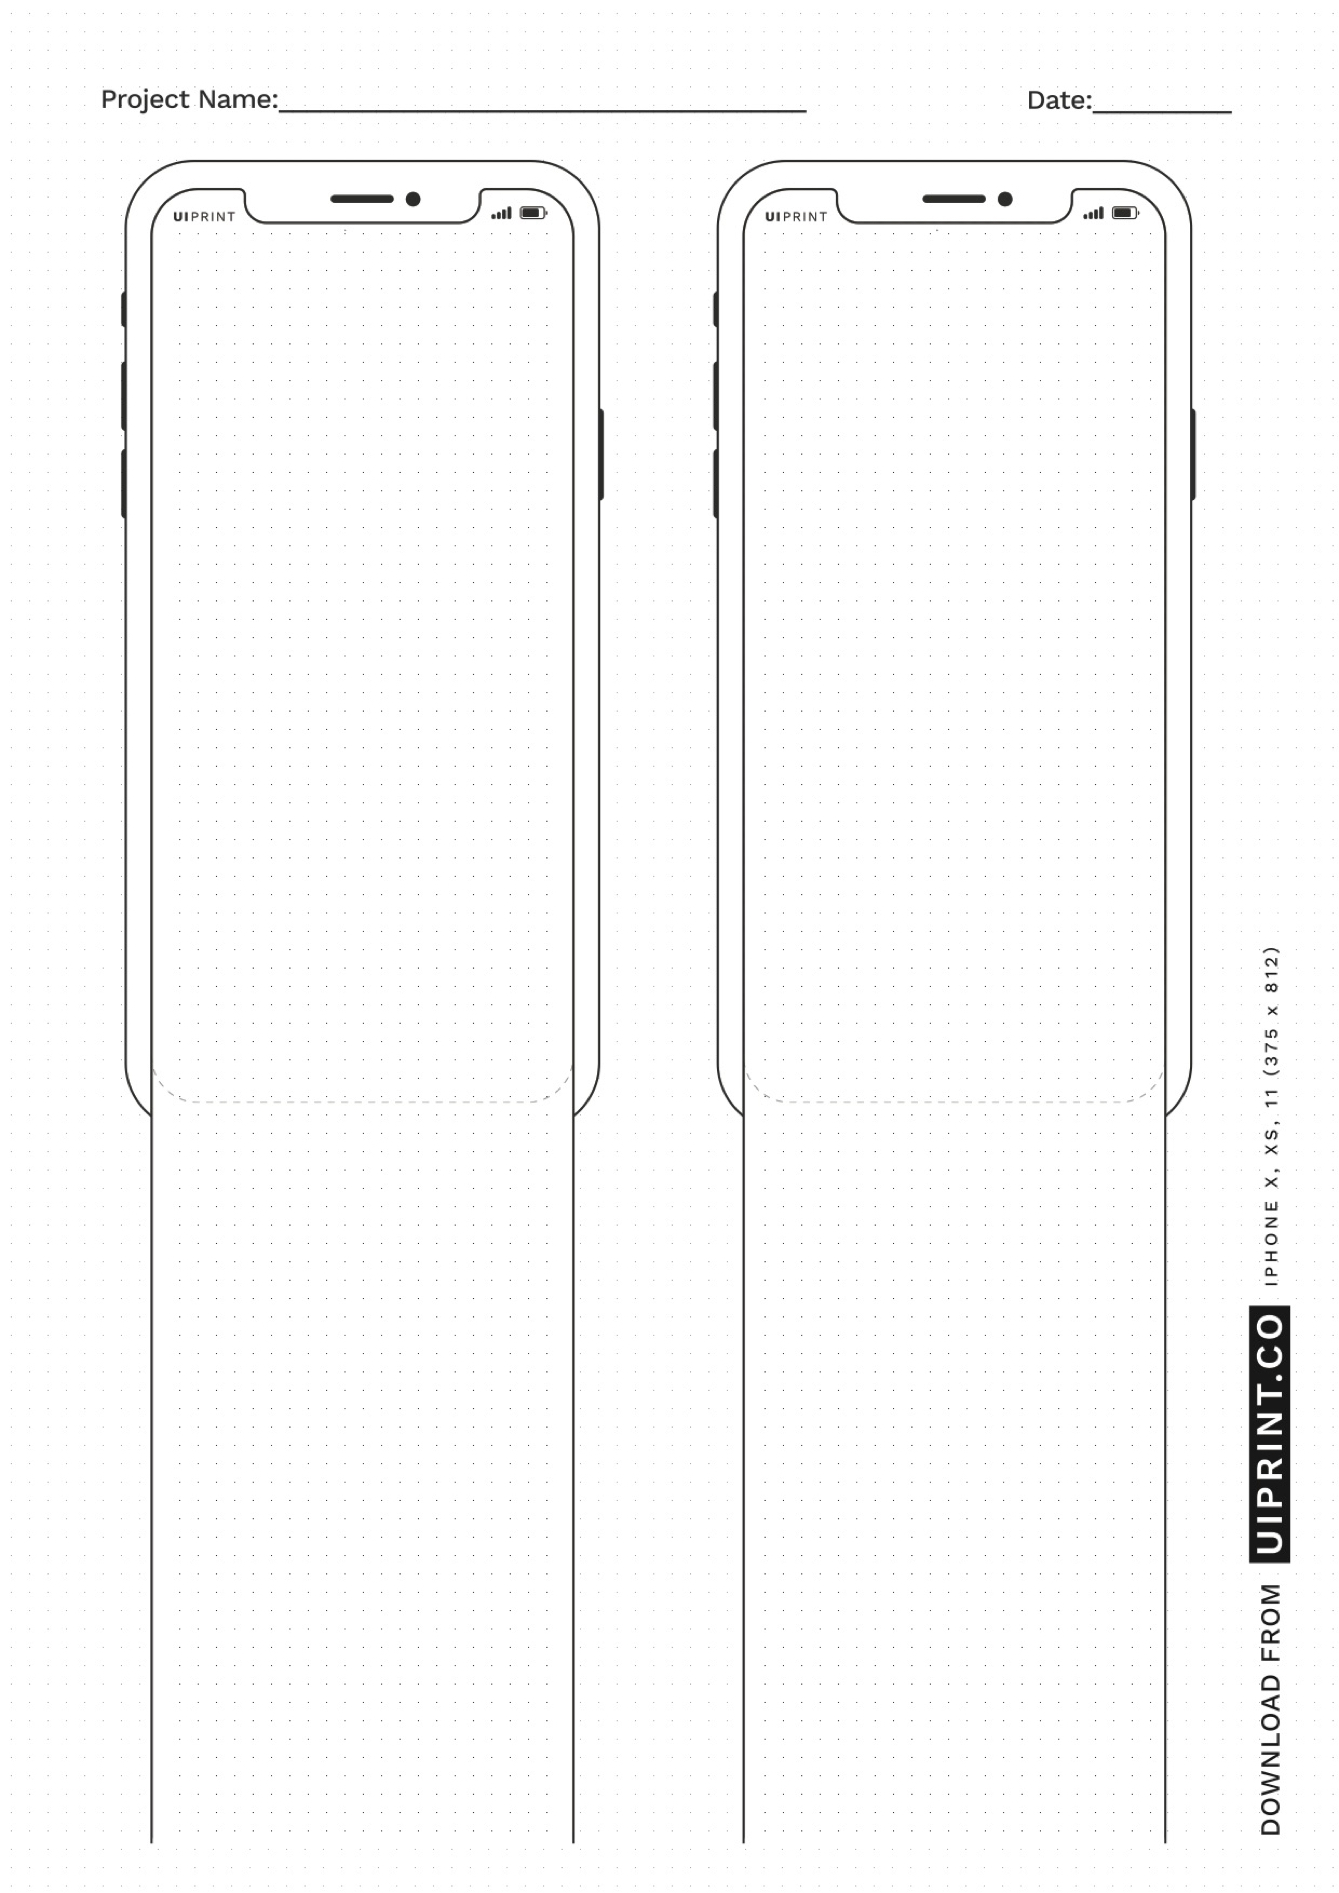 uiprint - Printable Mockups and Sketchpads - Collection of printable wireframe, mockup and dot grid sketchpad templates. All mobile mocks are mapped with original iPhone X, XS, 11Pro Screen size. You can download all templates in both A4 and Letter Size.